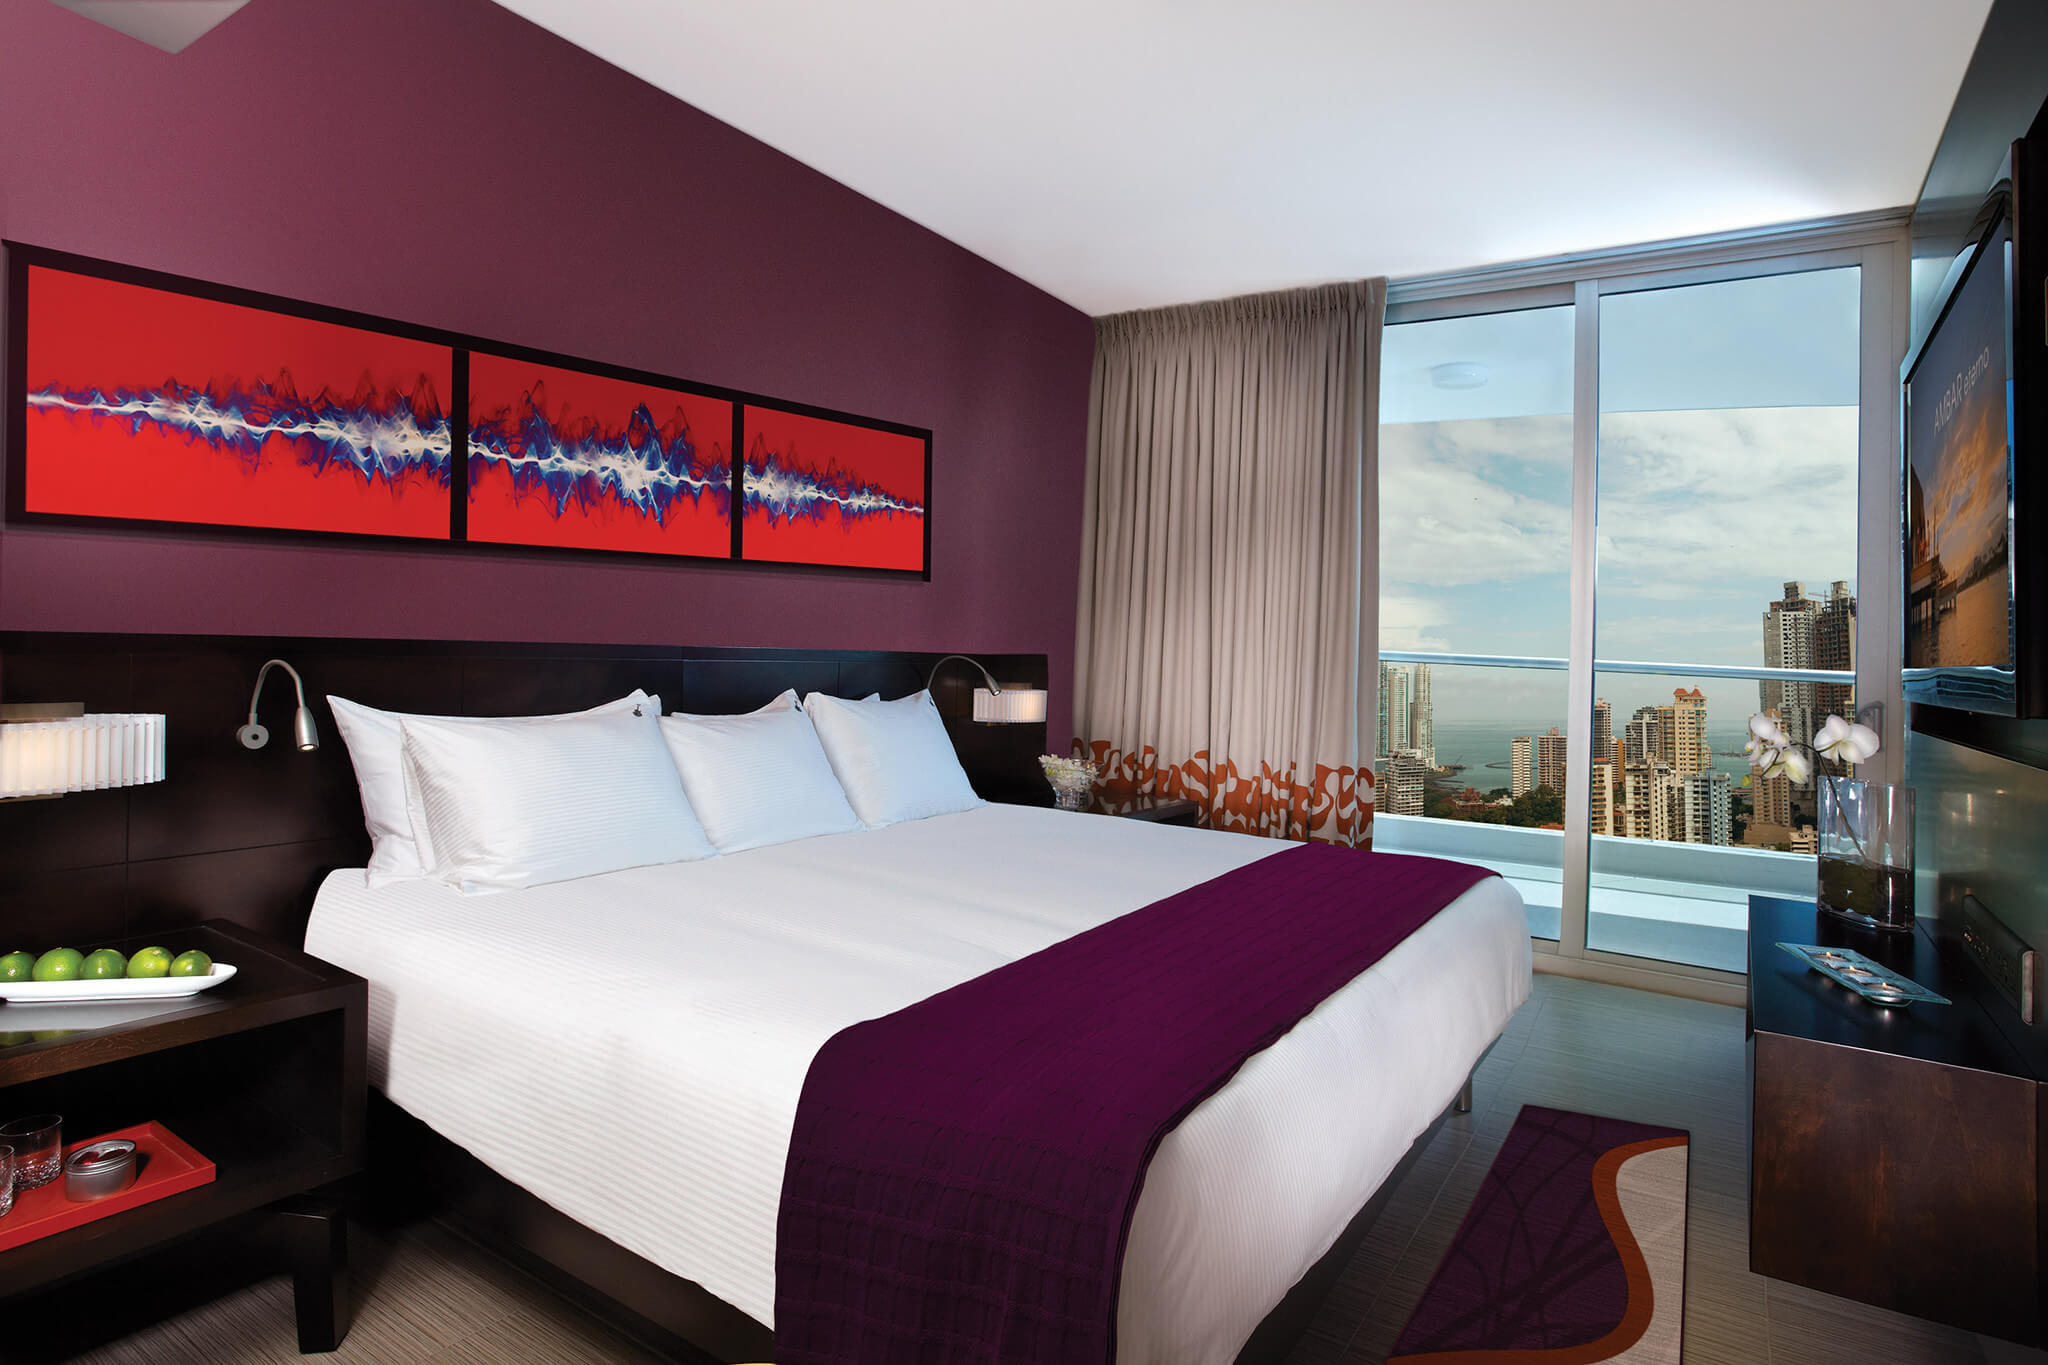 King Room at the Hard Rock Hotel in Panama